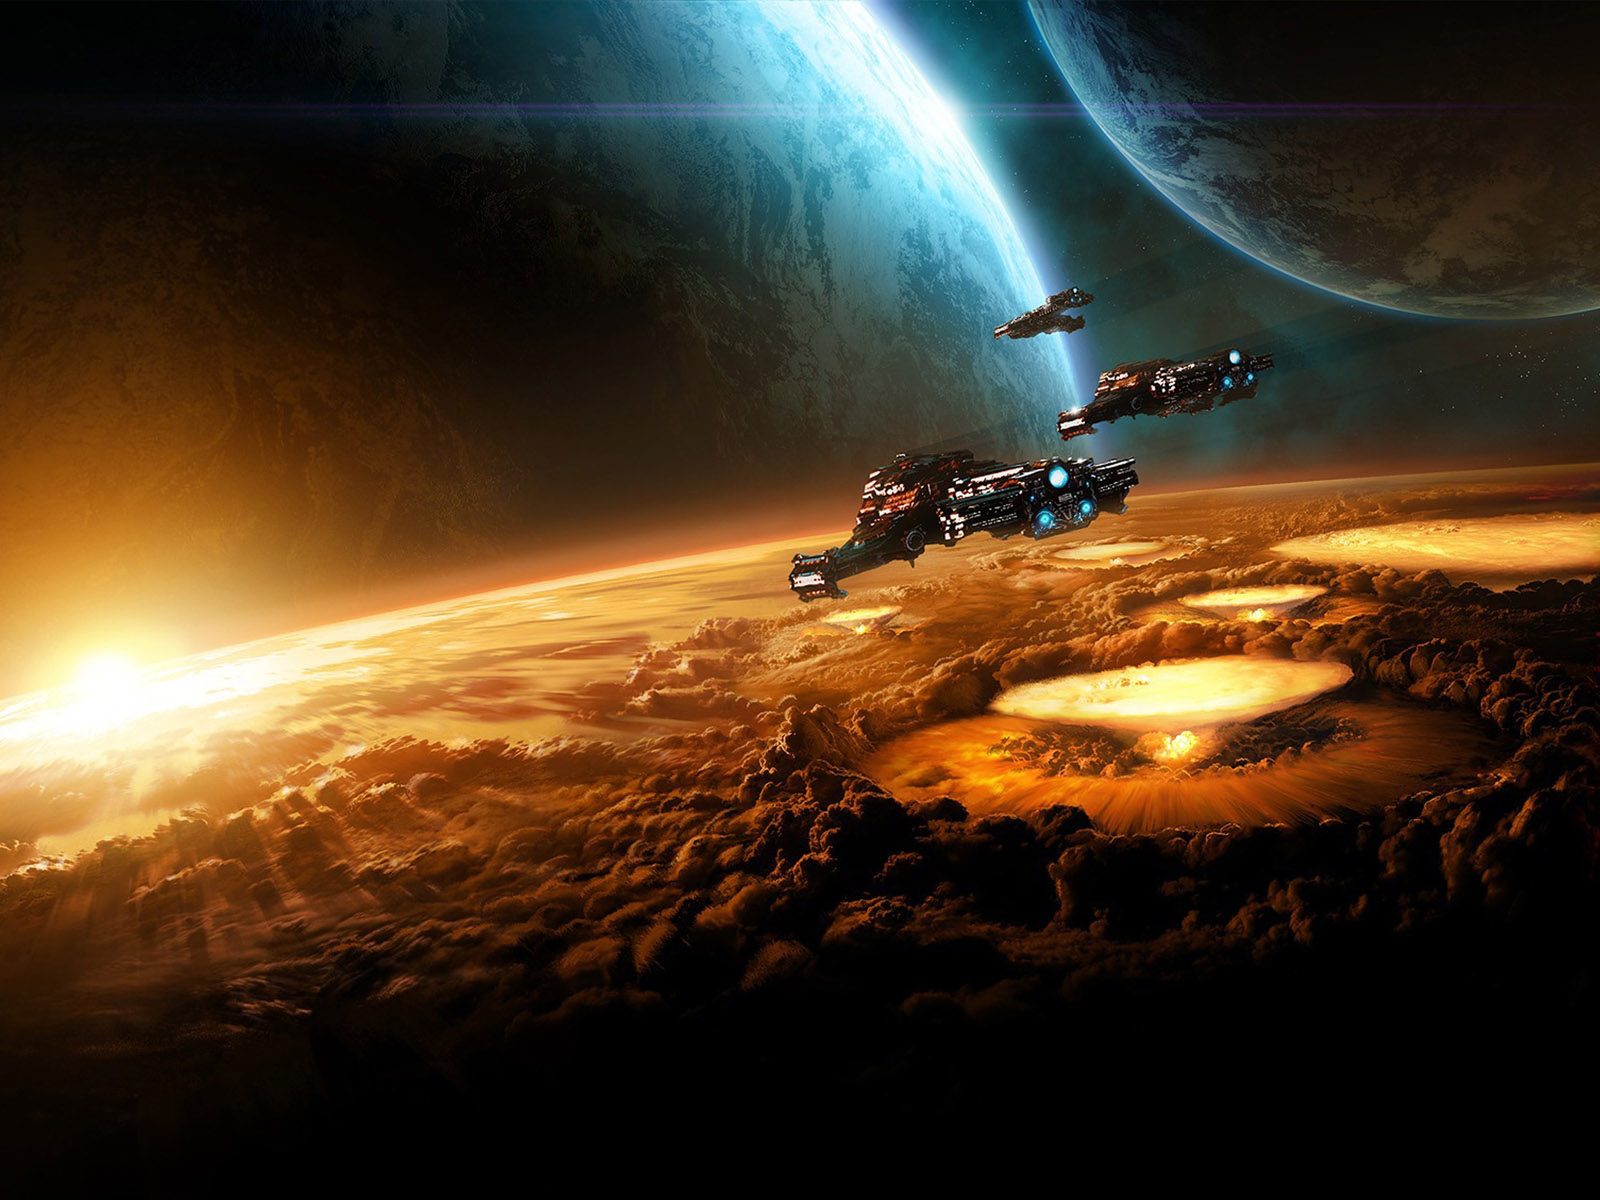 ... full size sun rise Science Fiction (Sci-fi) wallpaper / 1600x1200